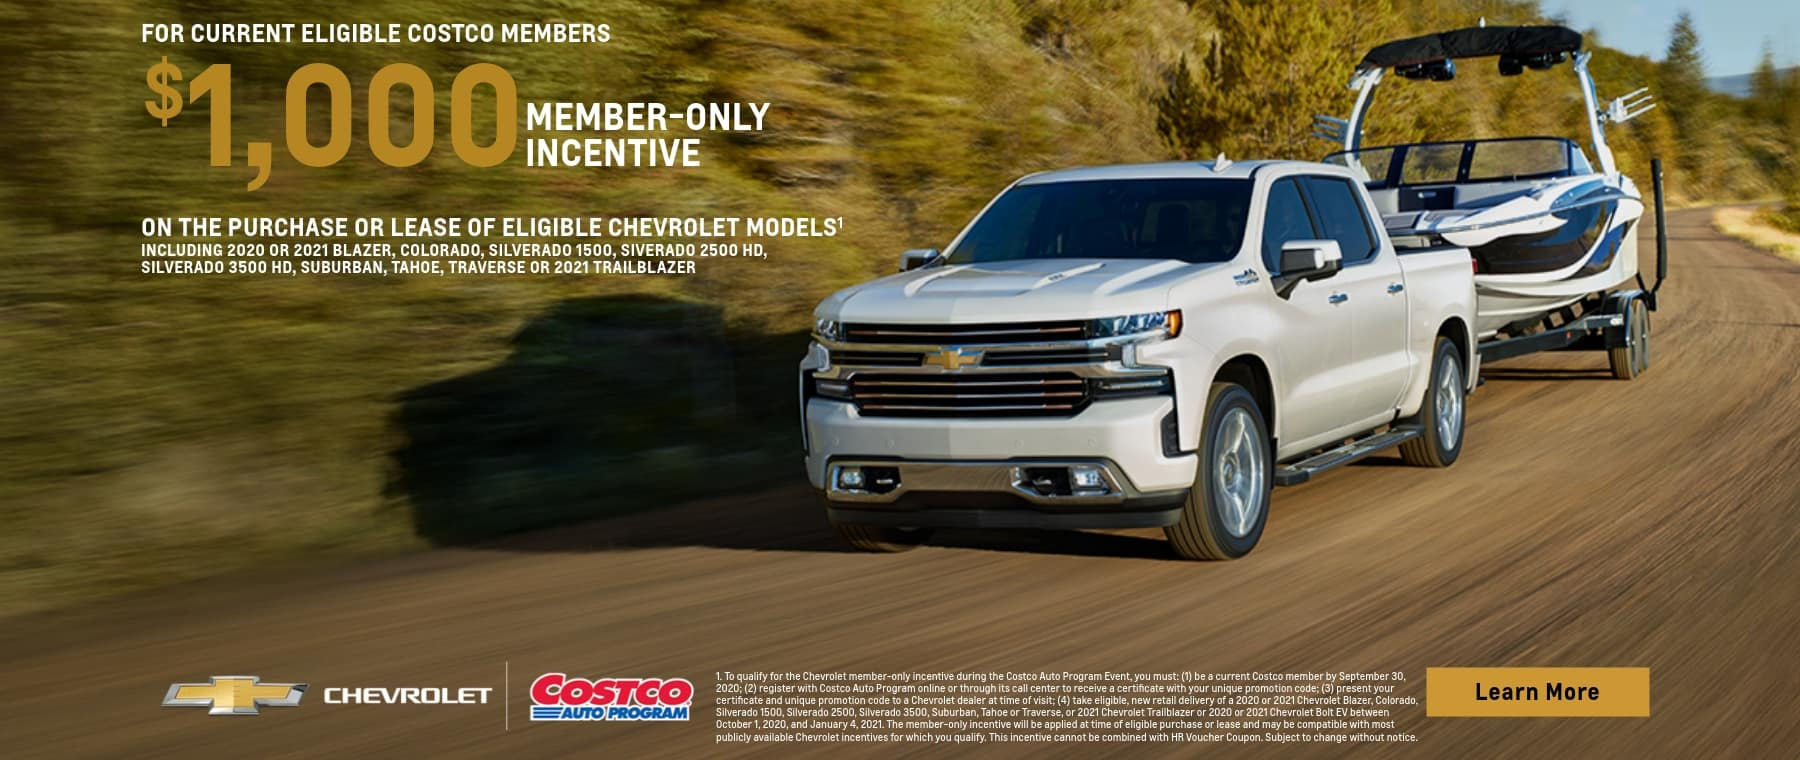 New Chevy Silverado 1500 Costco Rebate In Oklahoma